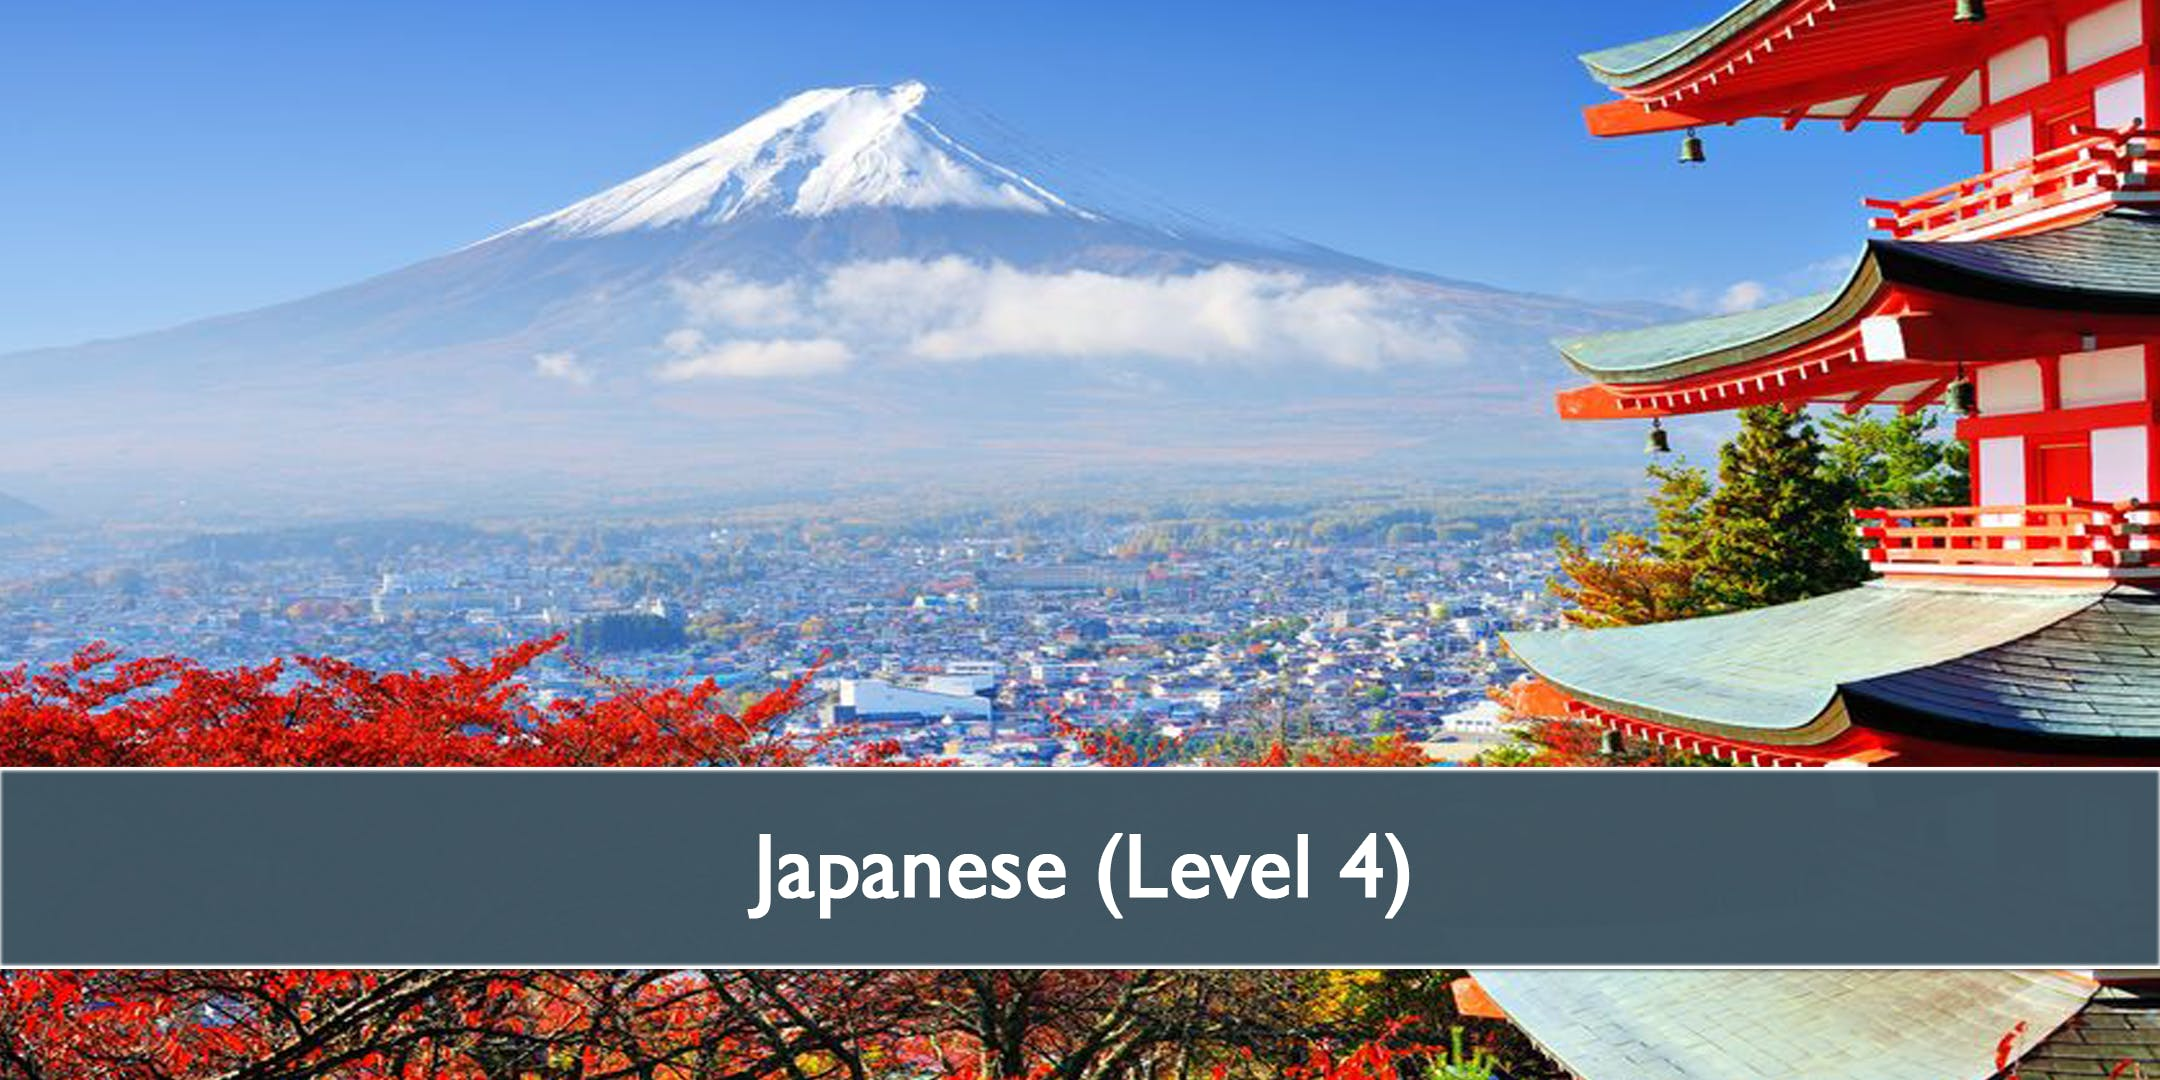 Japanese (Level 4) - January 2019